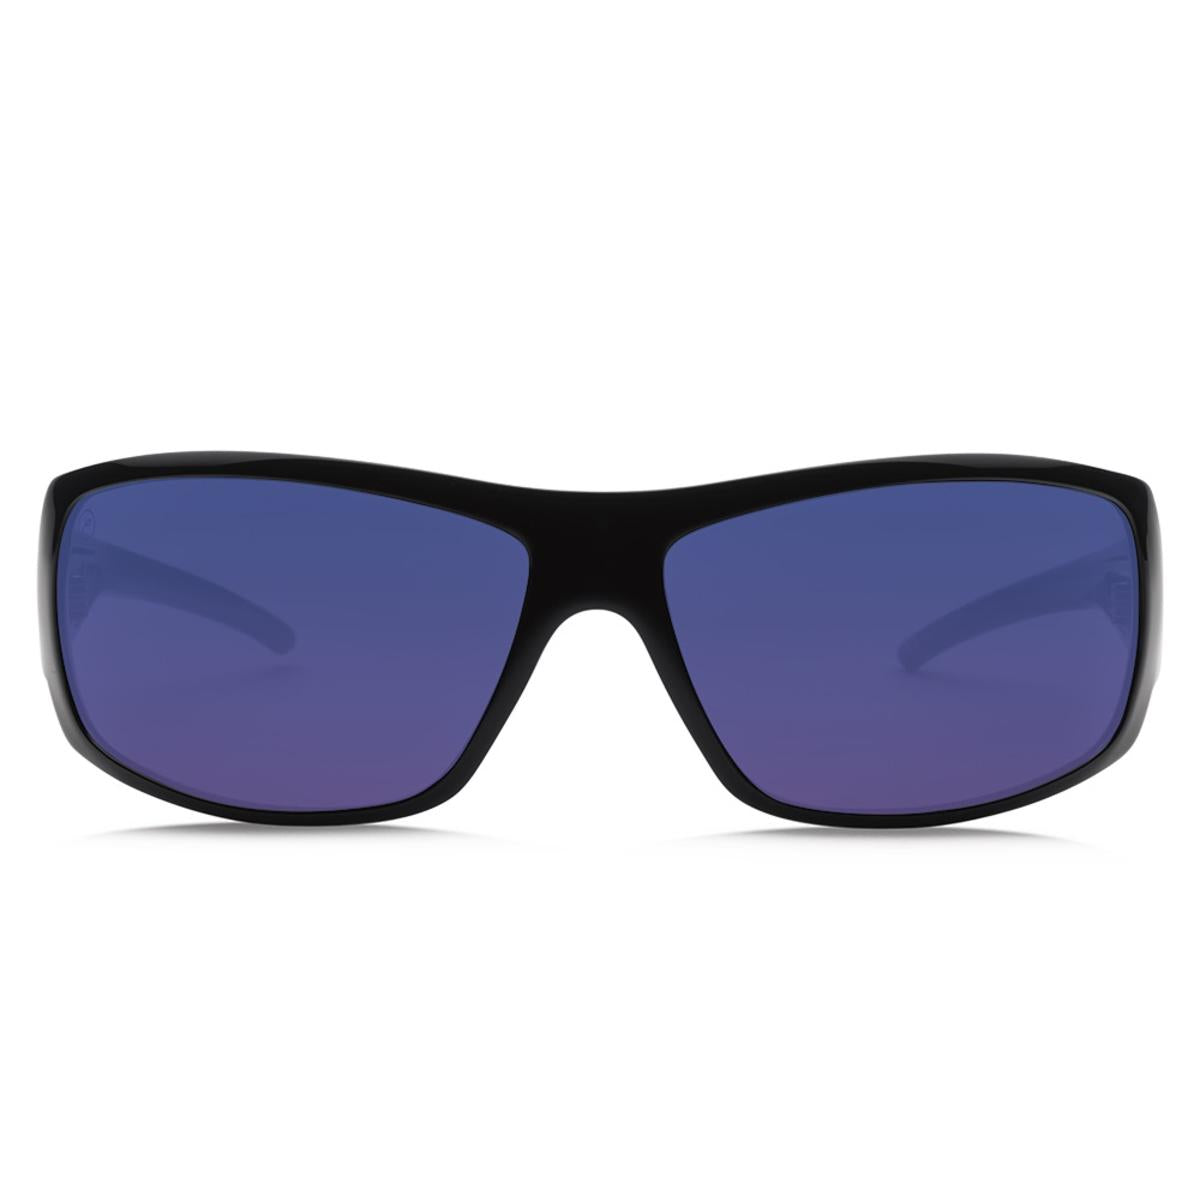 Electric Charge Men's Sunglasses